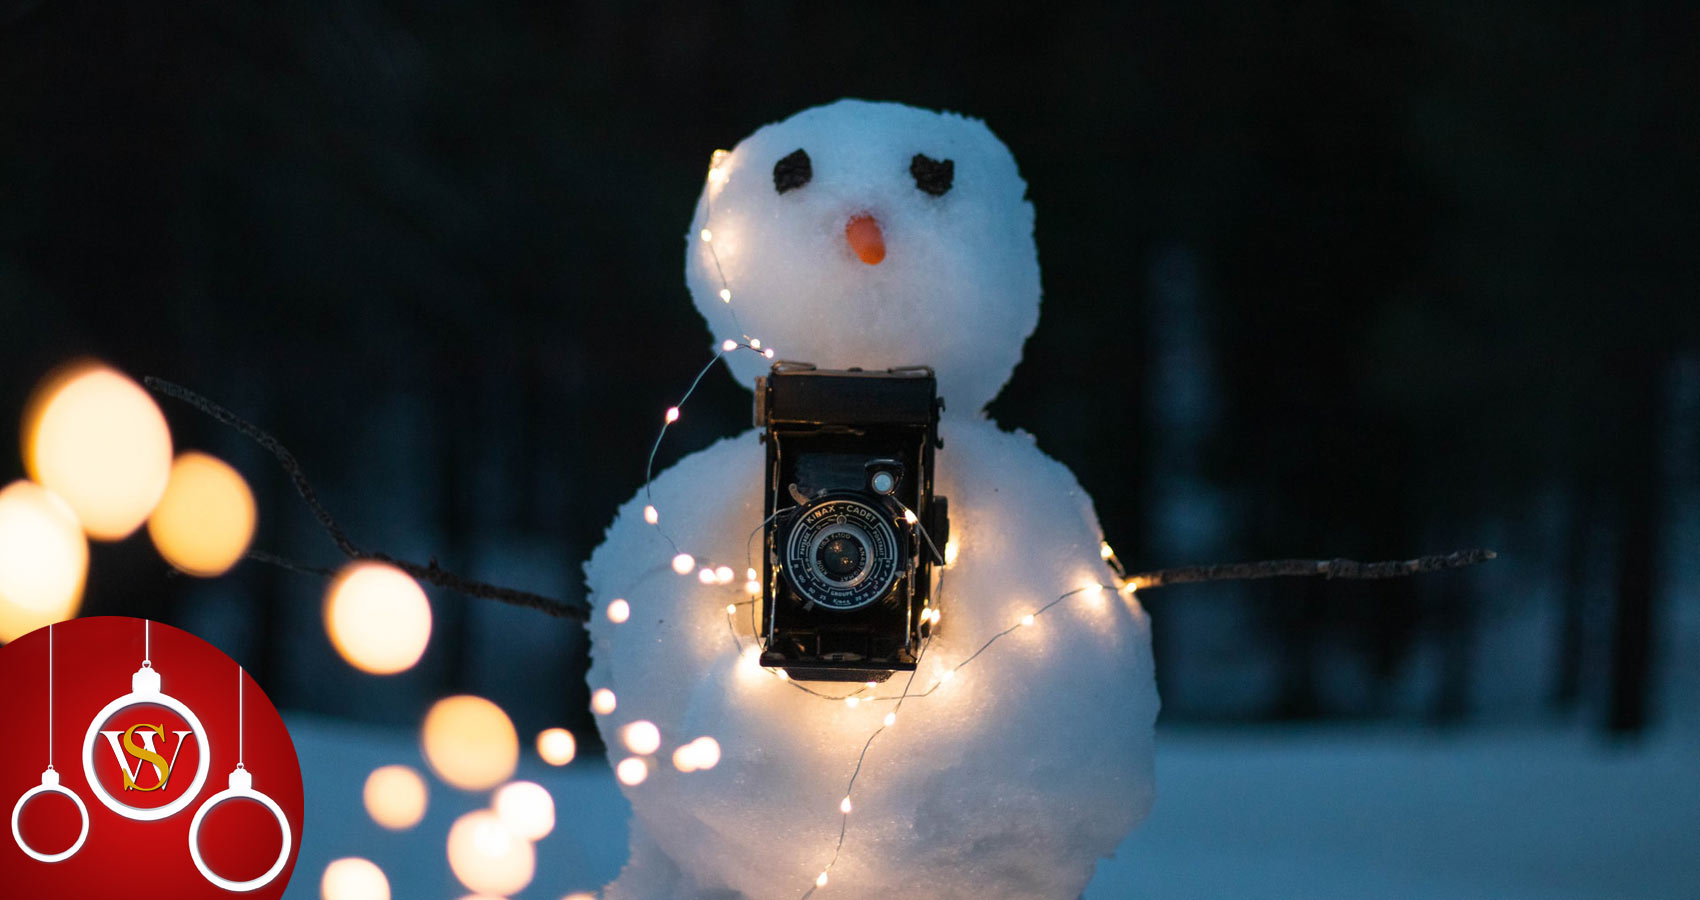 Snowperson, a poem by Elizabeth Creaswick at Spillwords.com